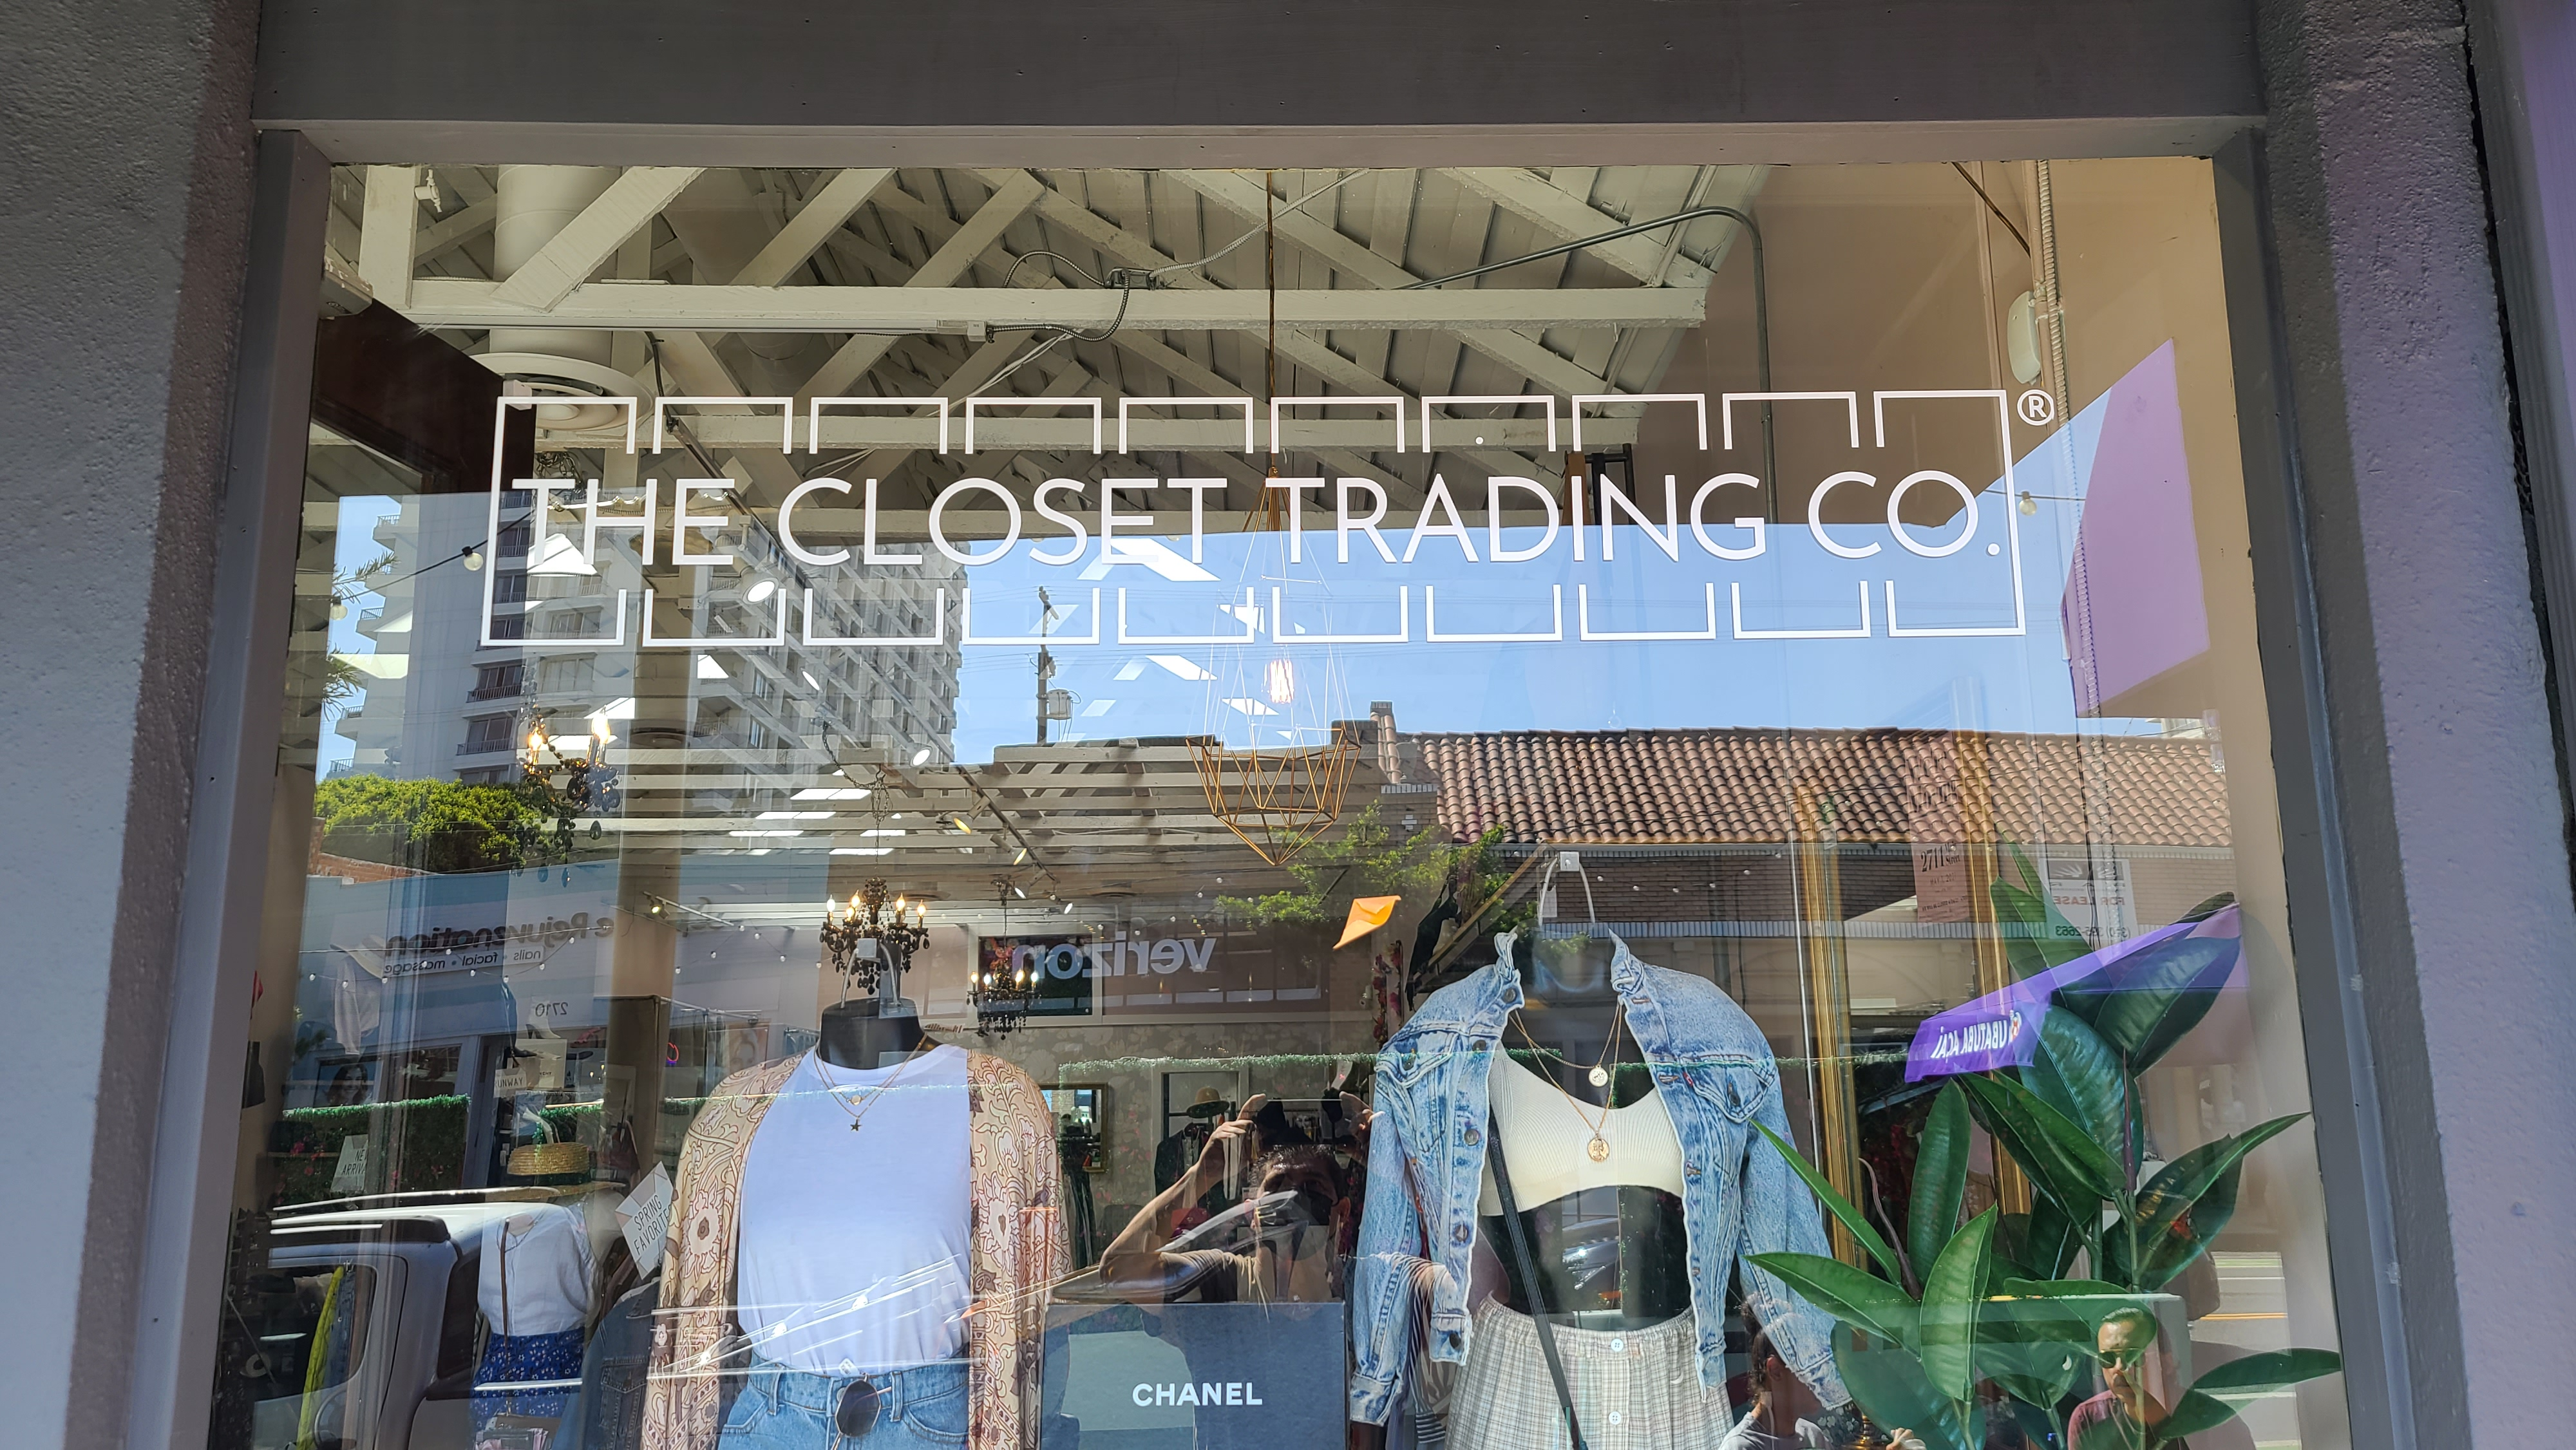 With the boutique window graphics package we installed for The Closet Trading Company, their Santa Monica storefront will be even more eye-catching.